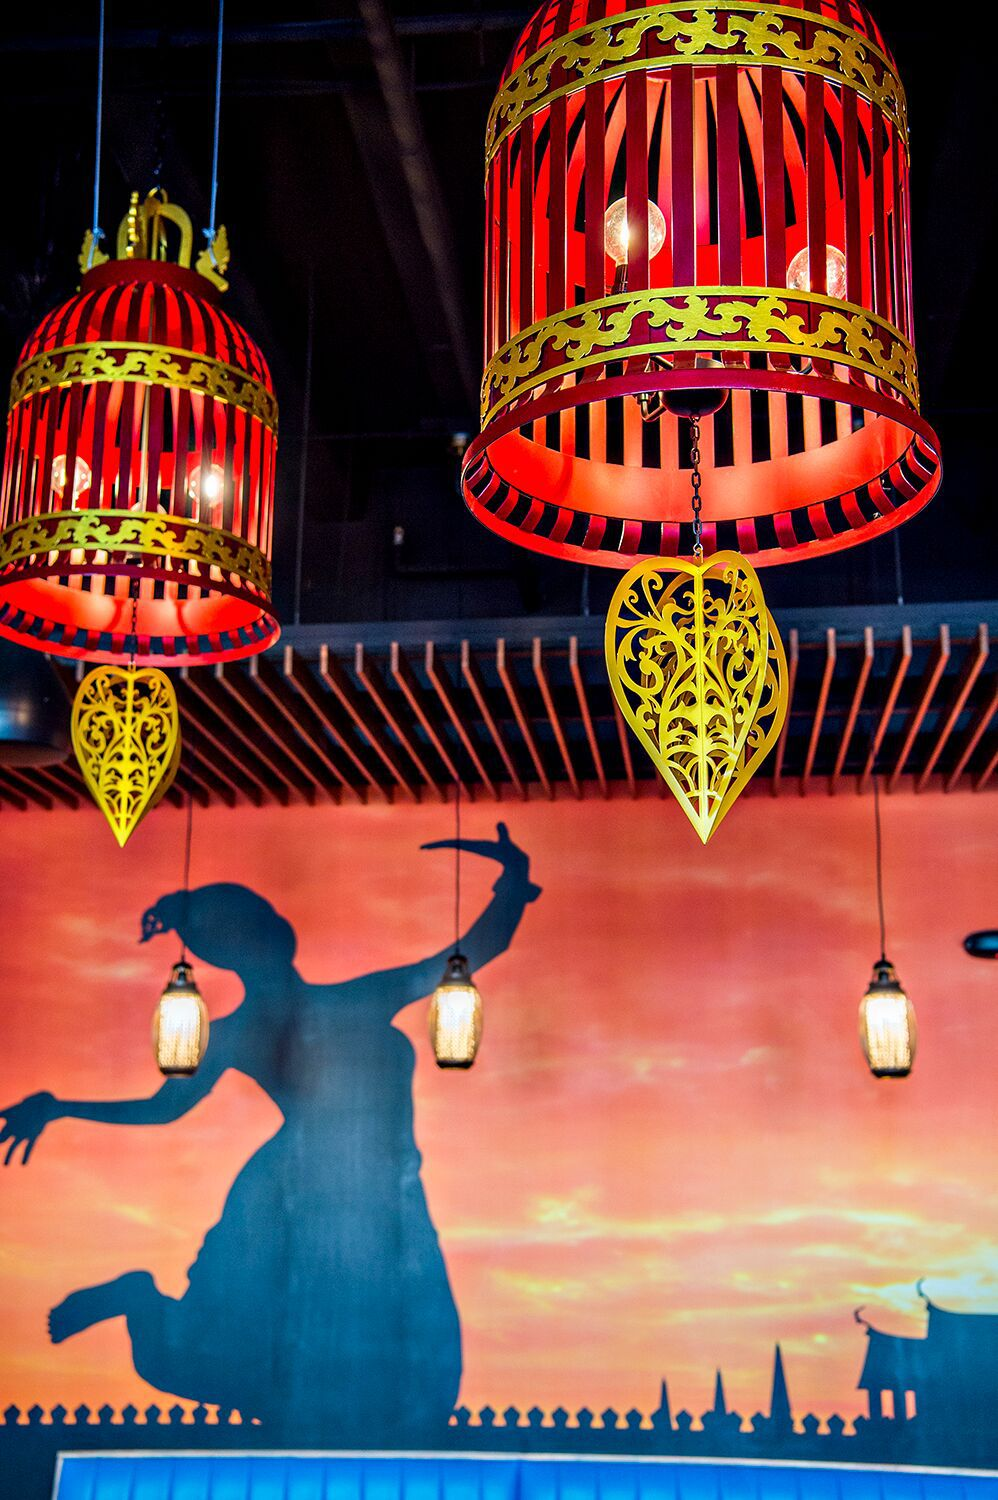 A photo of a close up view of the large red lamps with the silhouette of a dancing woman visible in the mural behind them